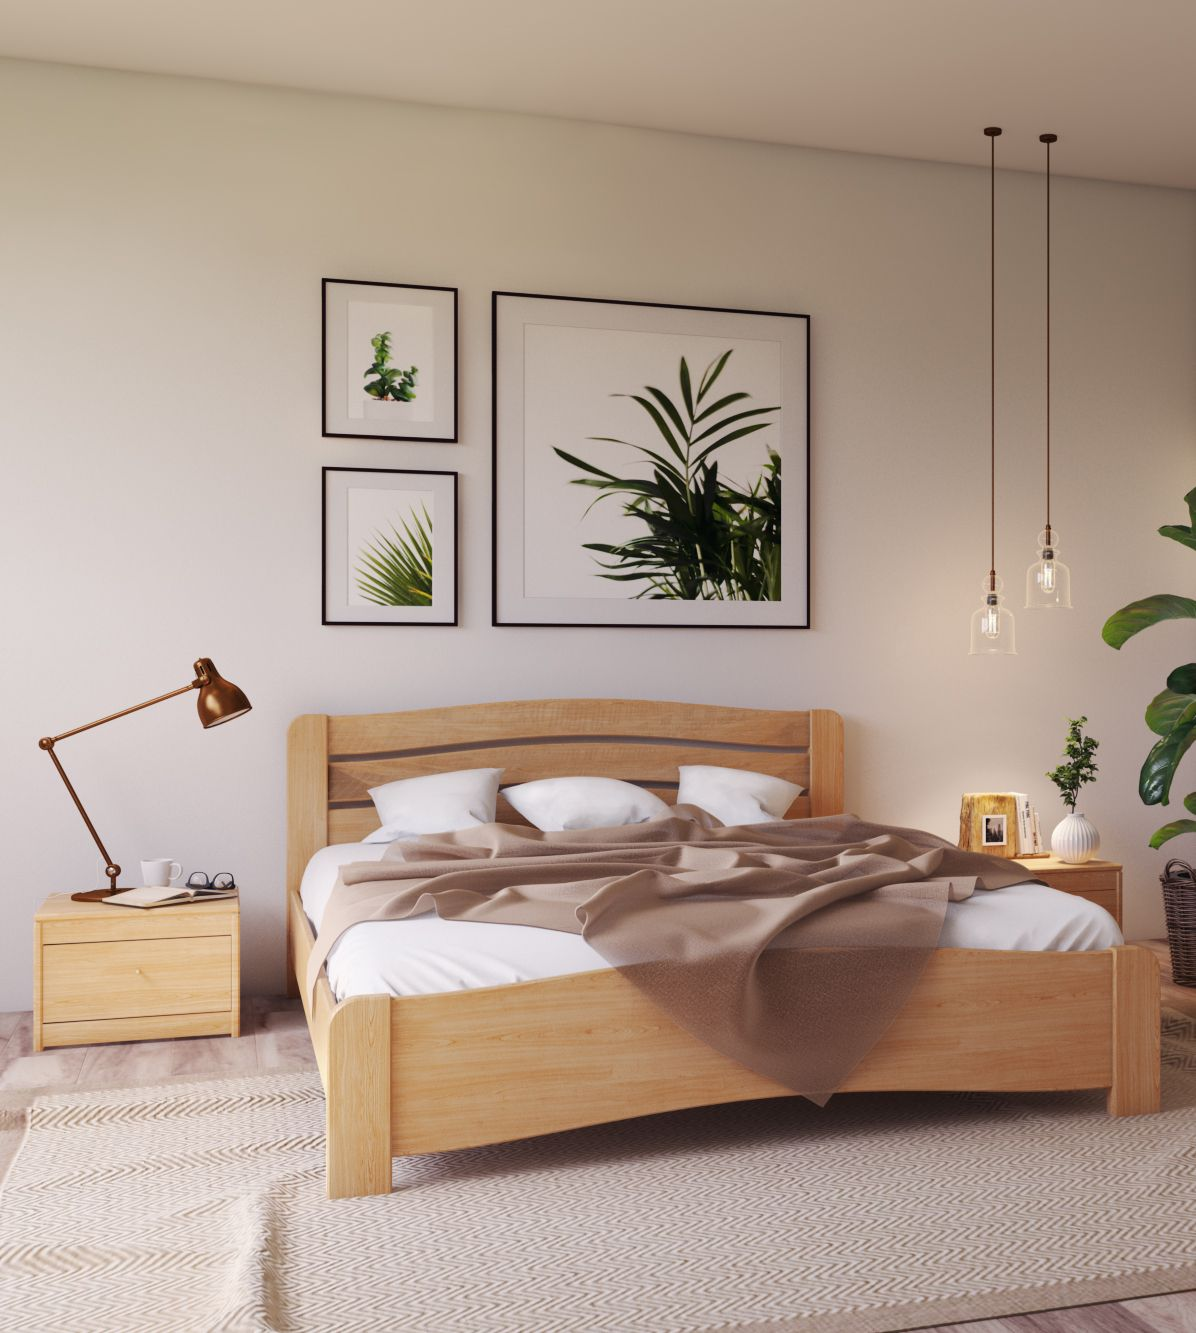 Light bedroom with wooden beech bed and wooden bedside